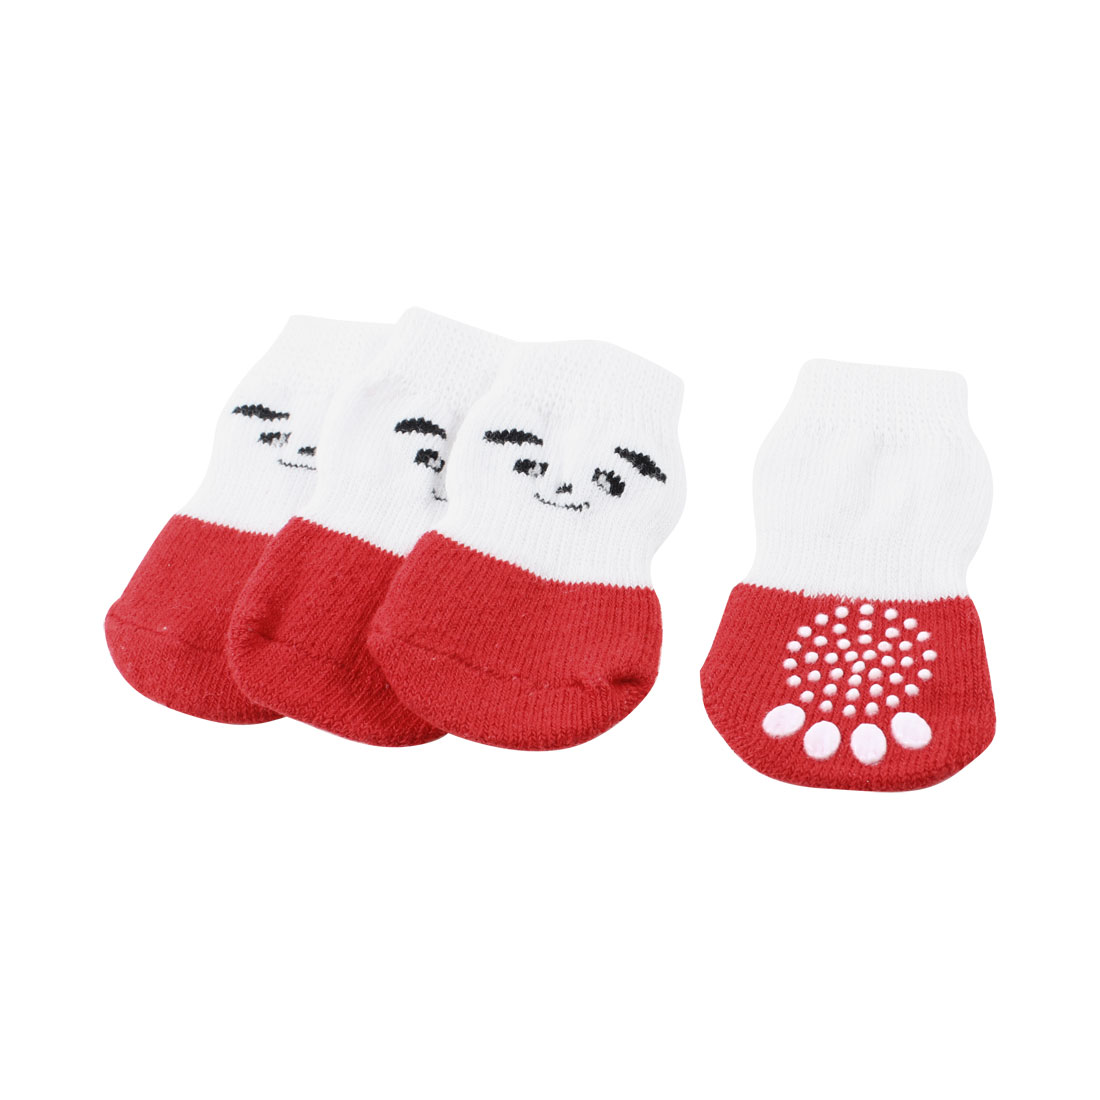 2 Pairs White Red Knitting Paw Pattern Stretchy Nonslip Pet Dog Doggy Socks